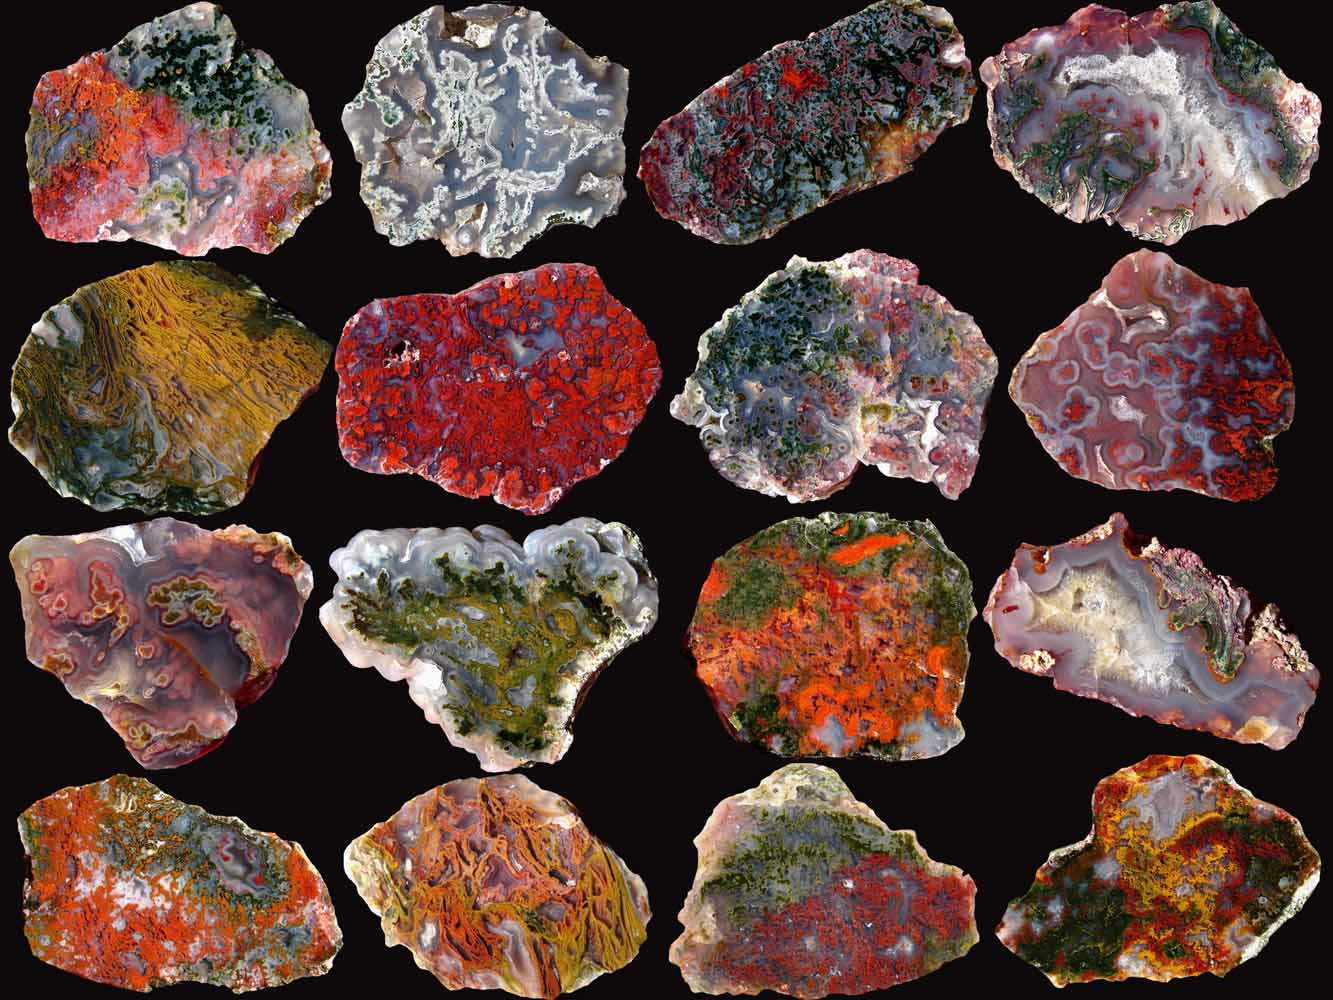 Agates and Minerals from Hungary